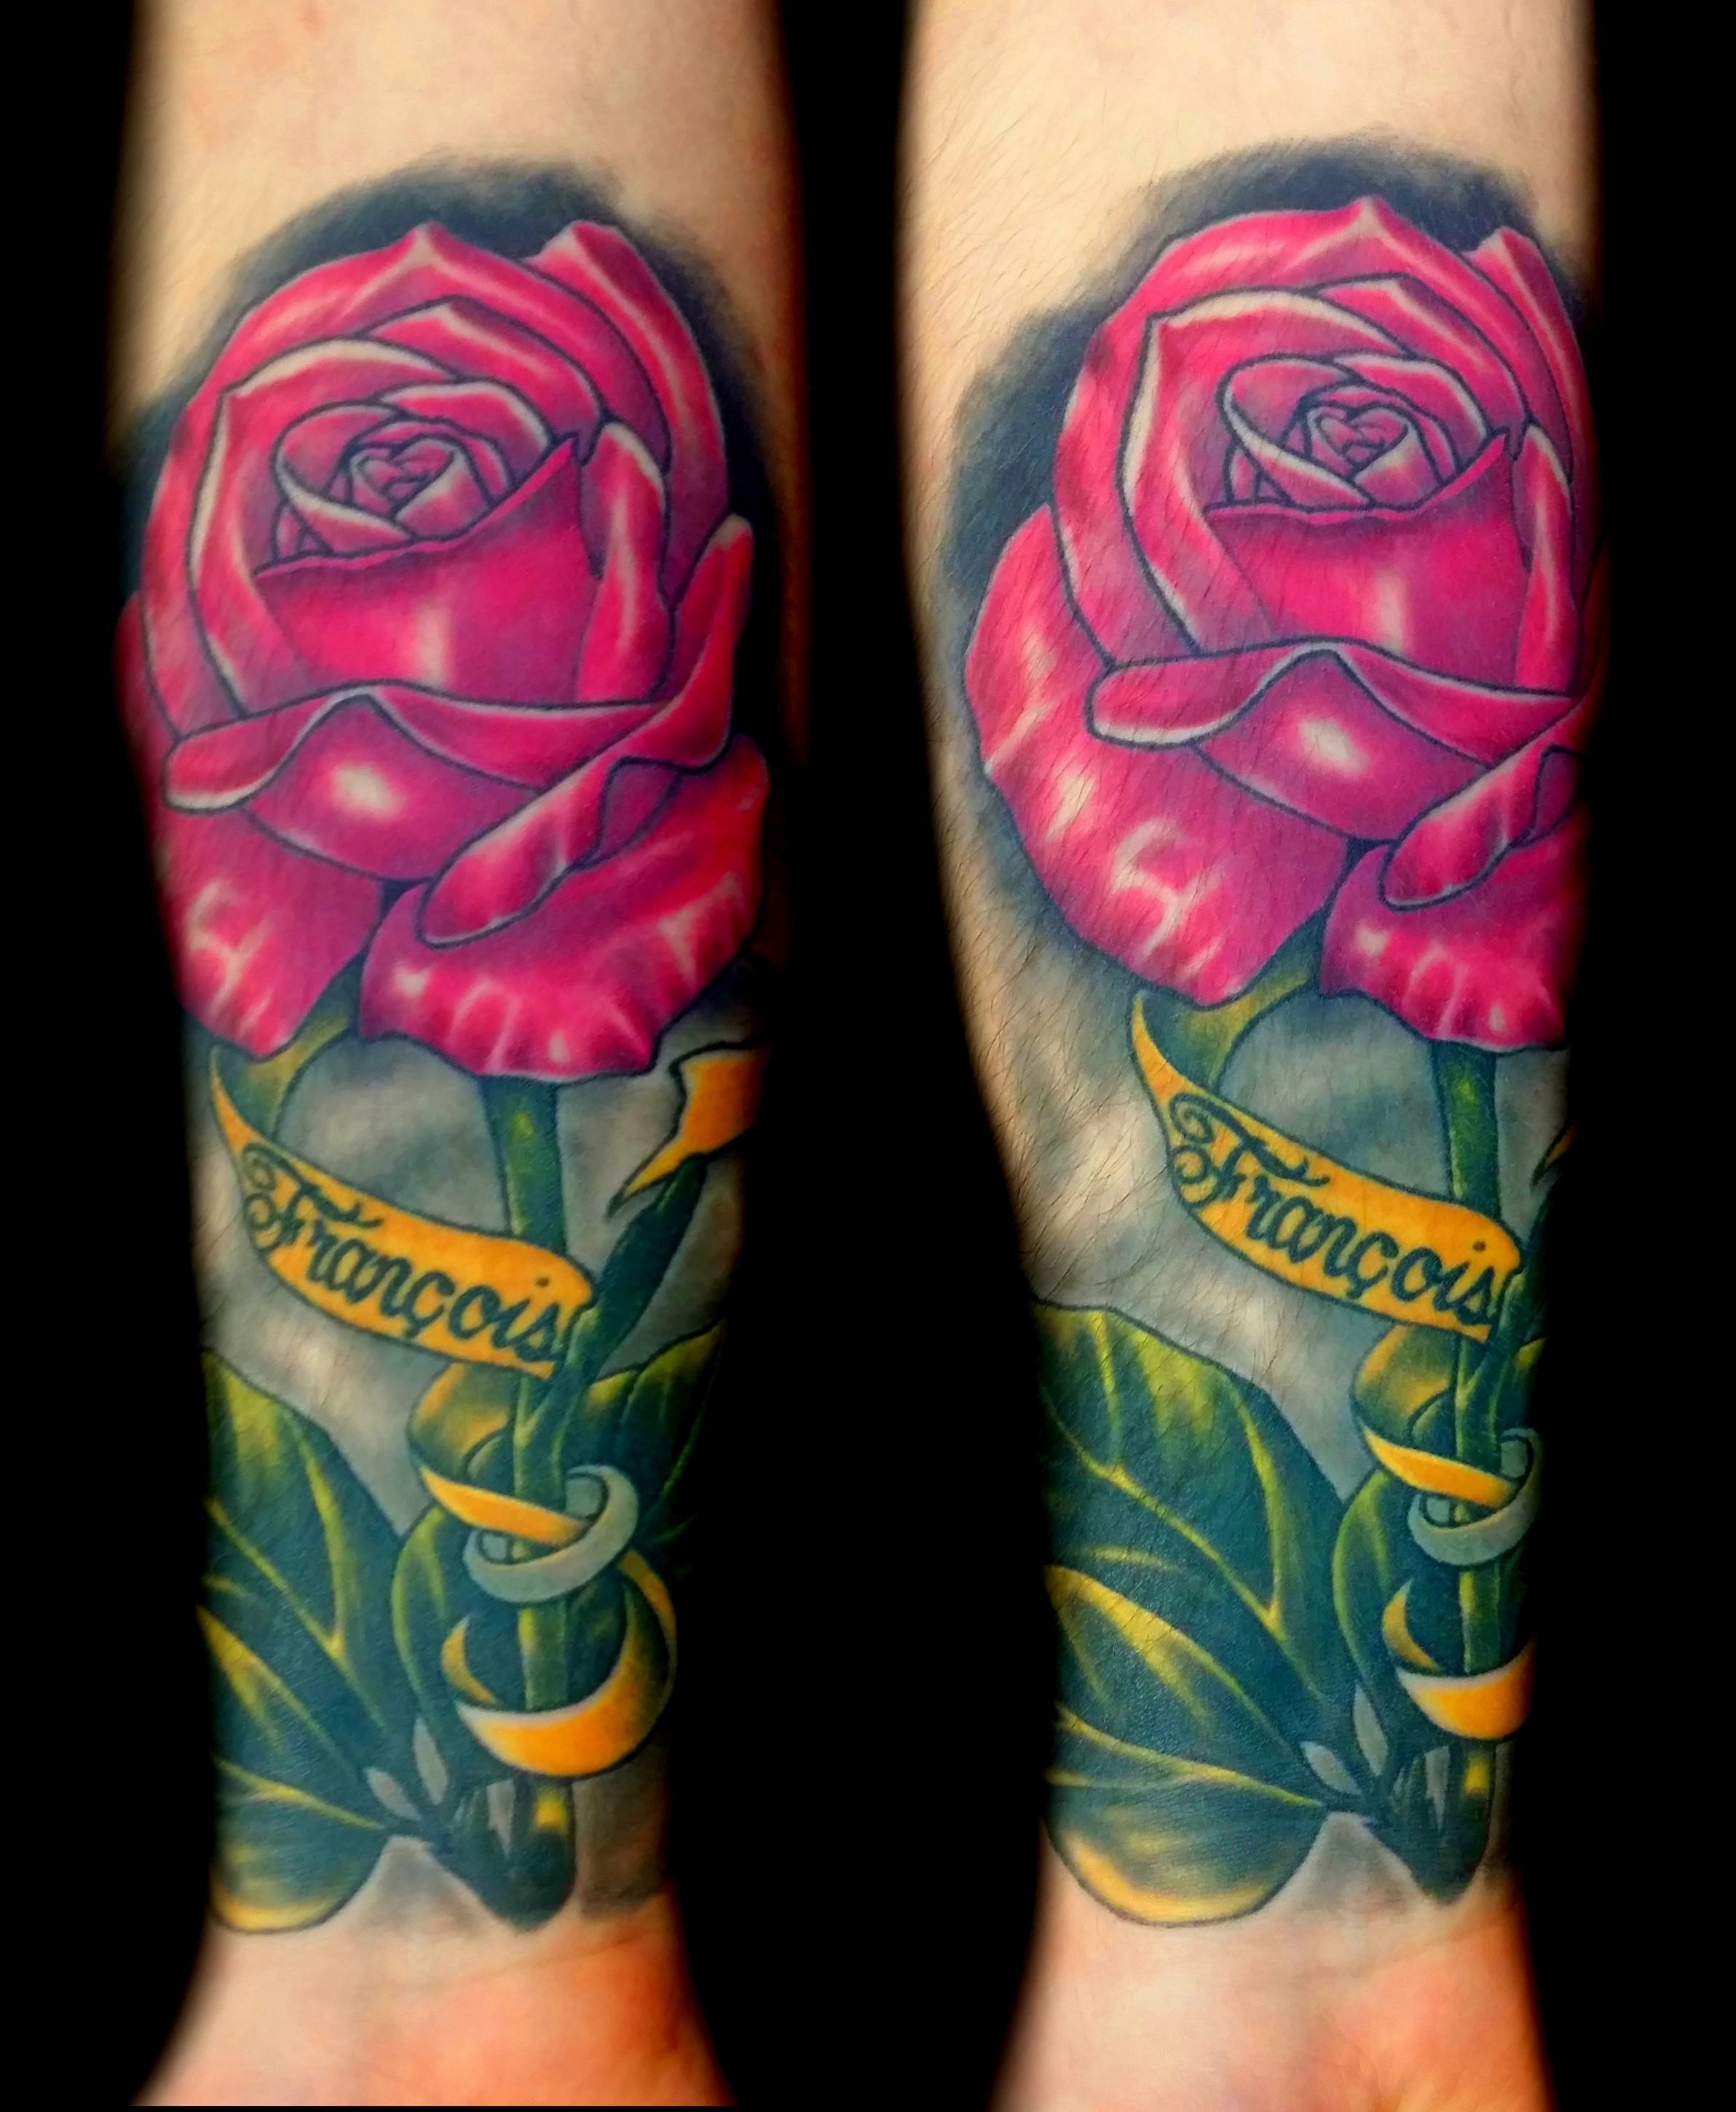 rose ring - right forearm